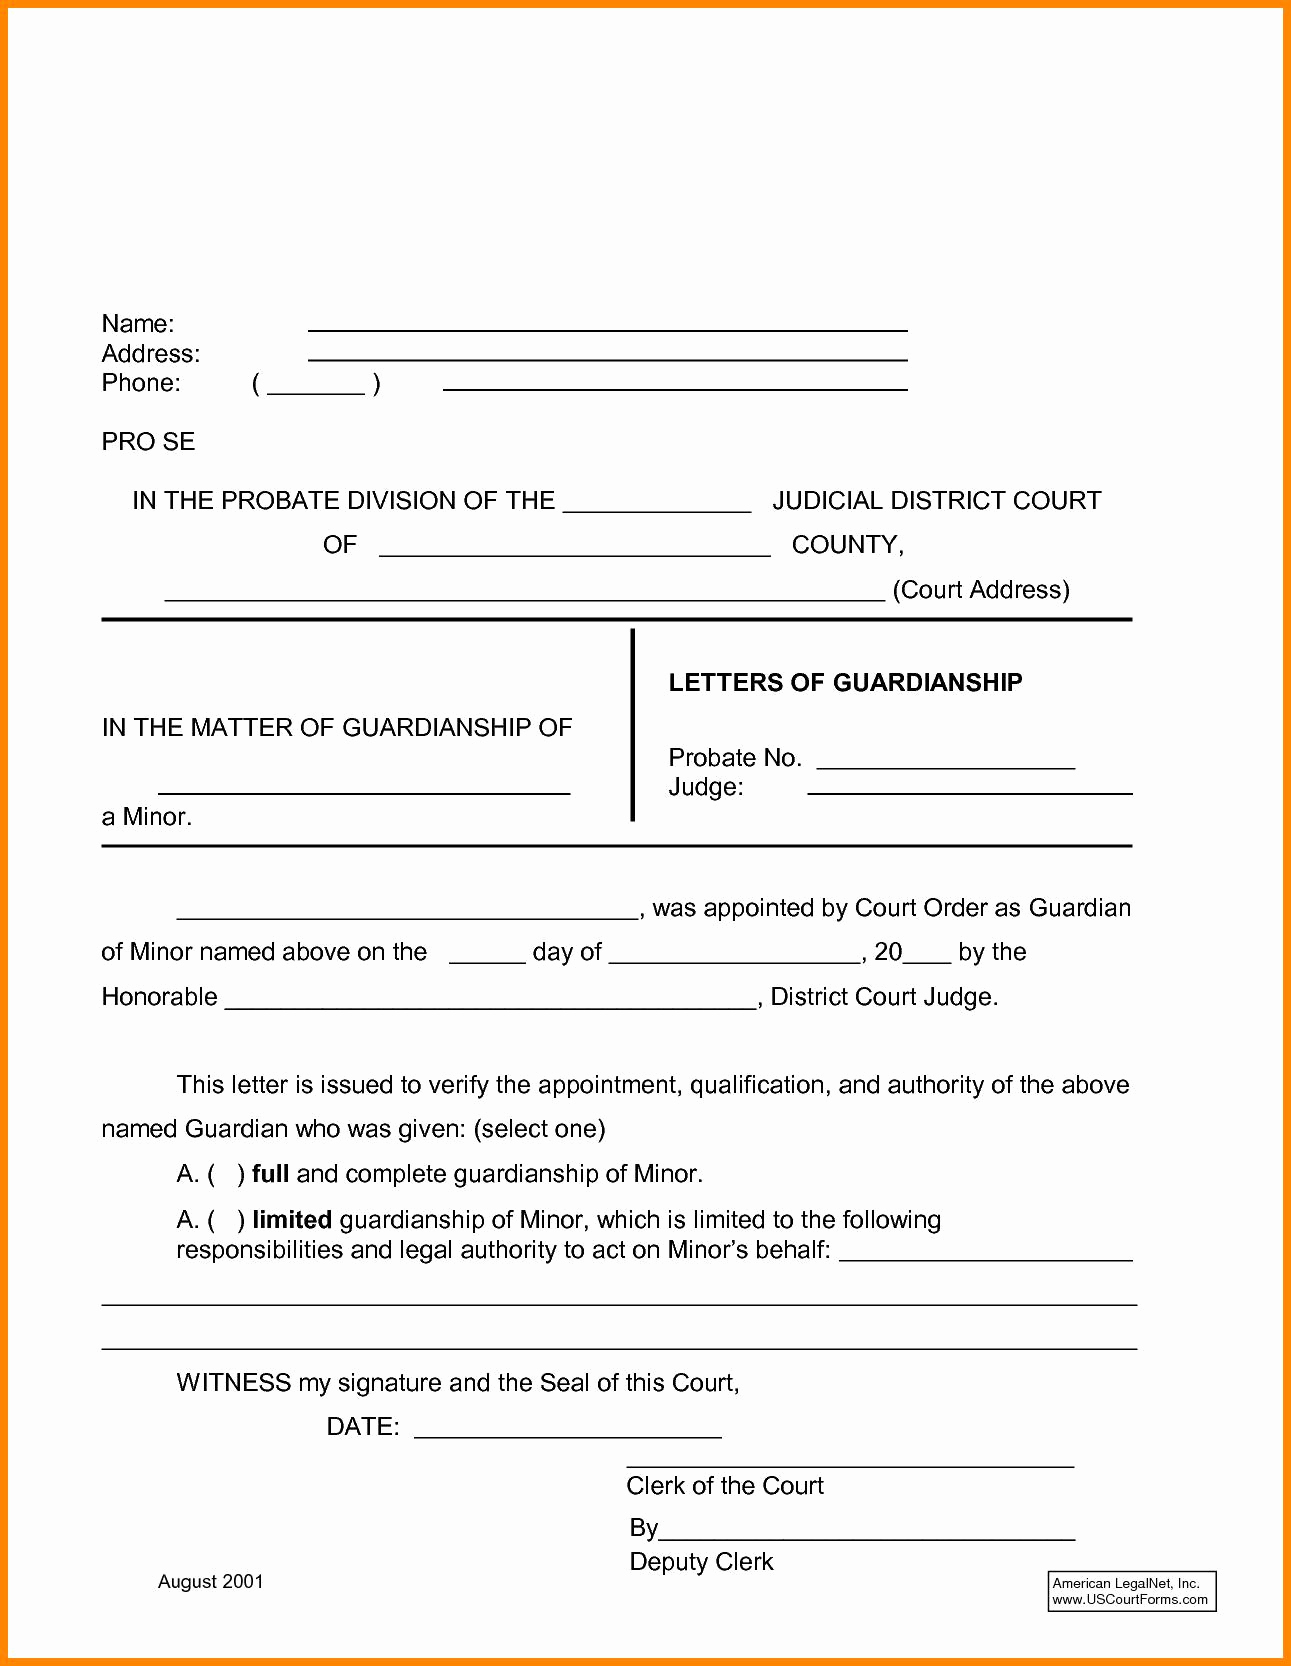 template for temporary guardianship letter example-Temporary Guardianship Agreement form Temporary Custody Letter Template Elegant Child Custody Agreement 17-s